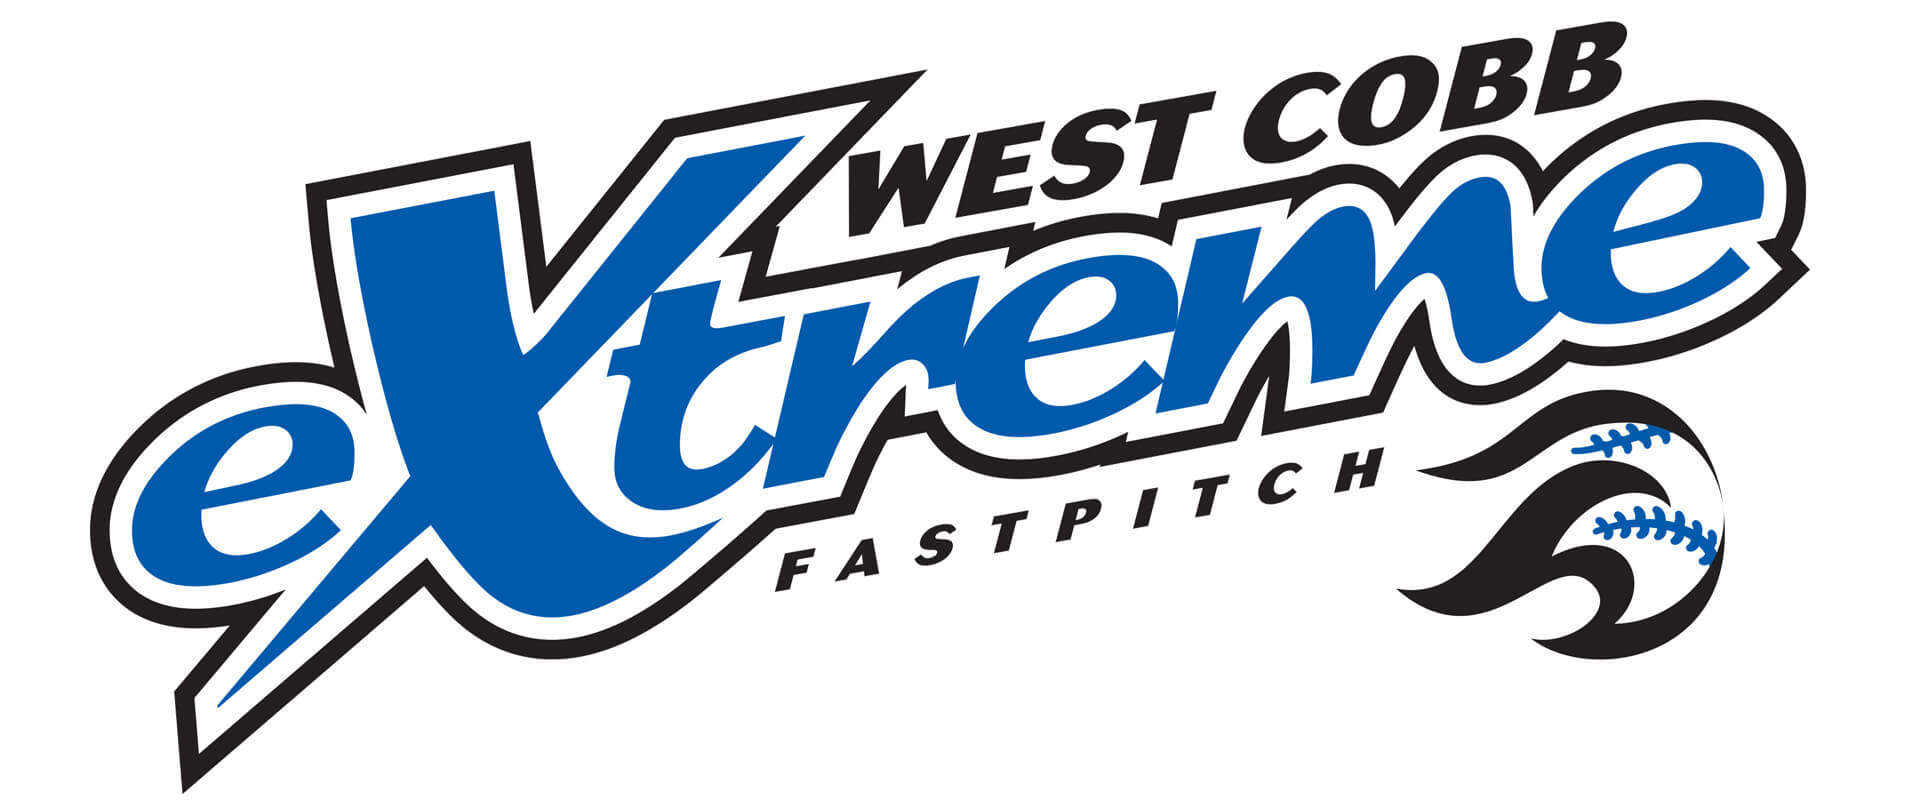 West Cobb Extreme Fastpitch